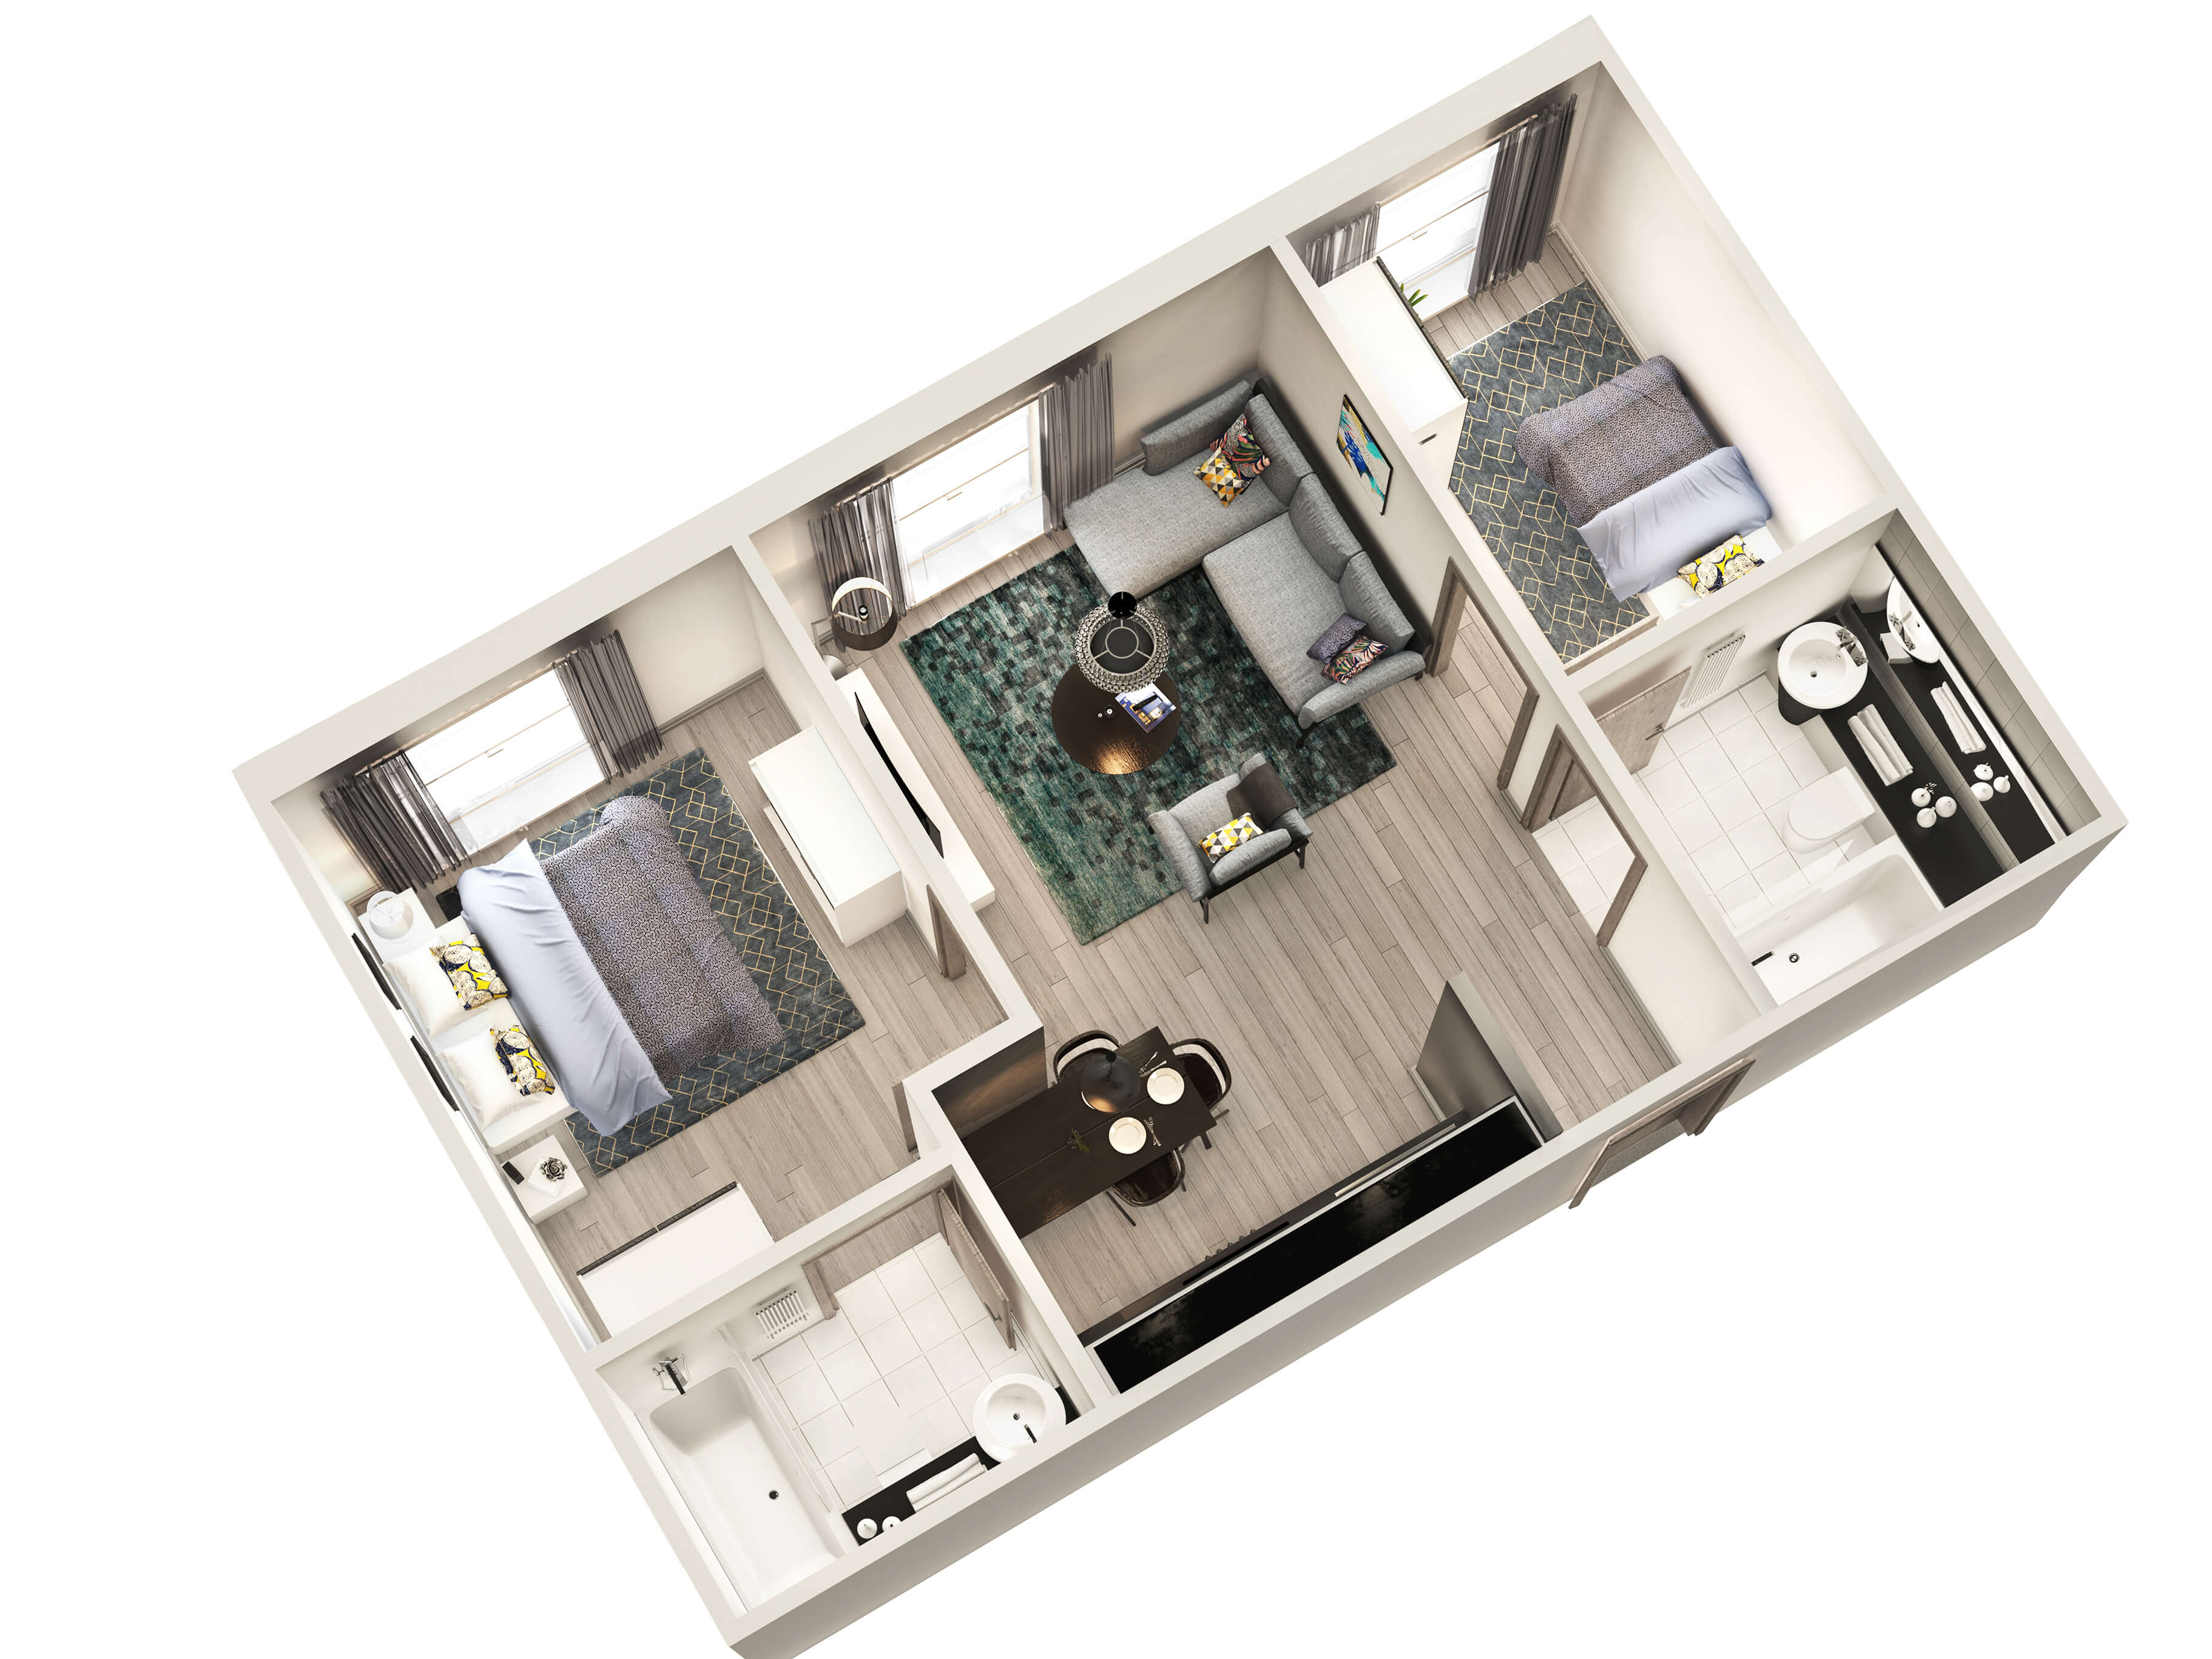 CGI Visual of Winckley House 2 Bedroom Interior Apartment View for Marketing purposes